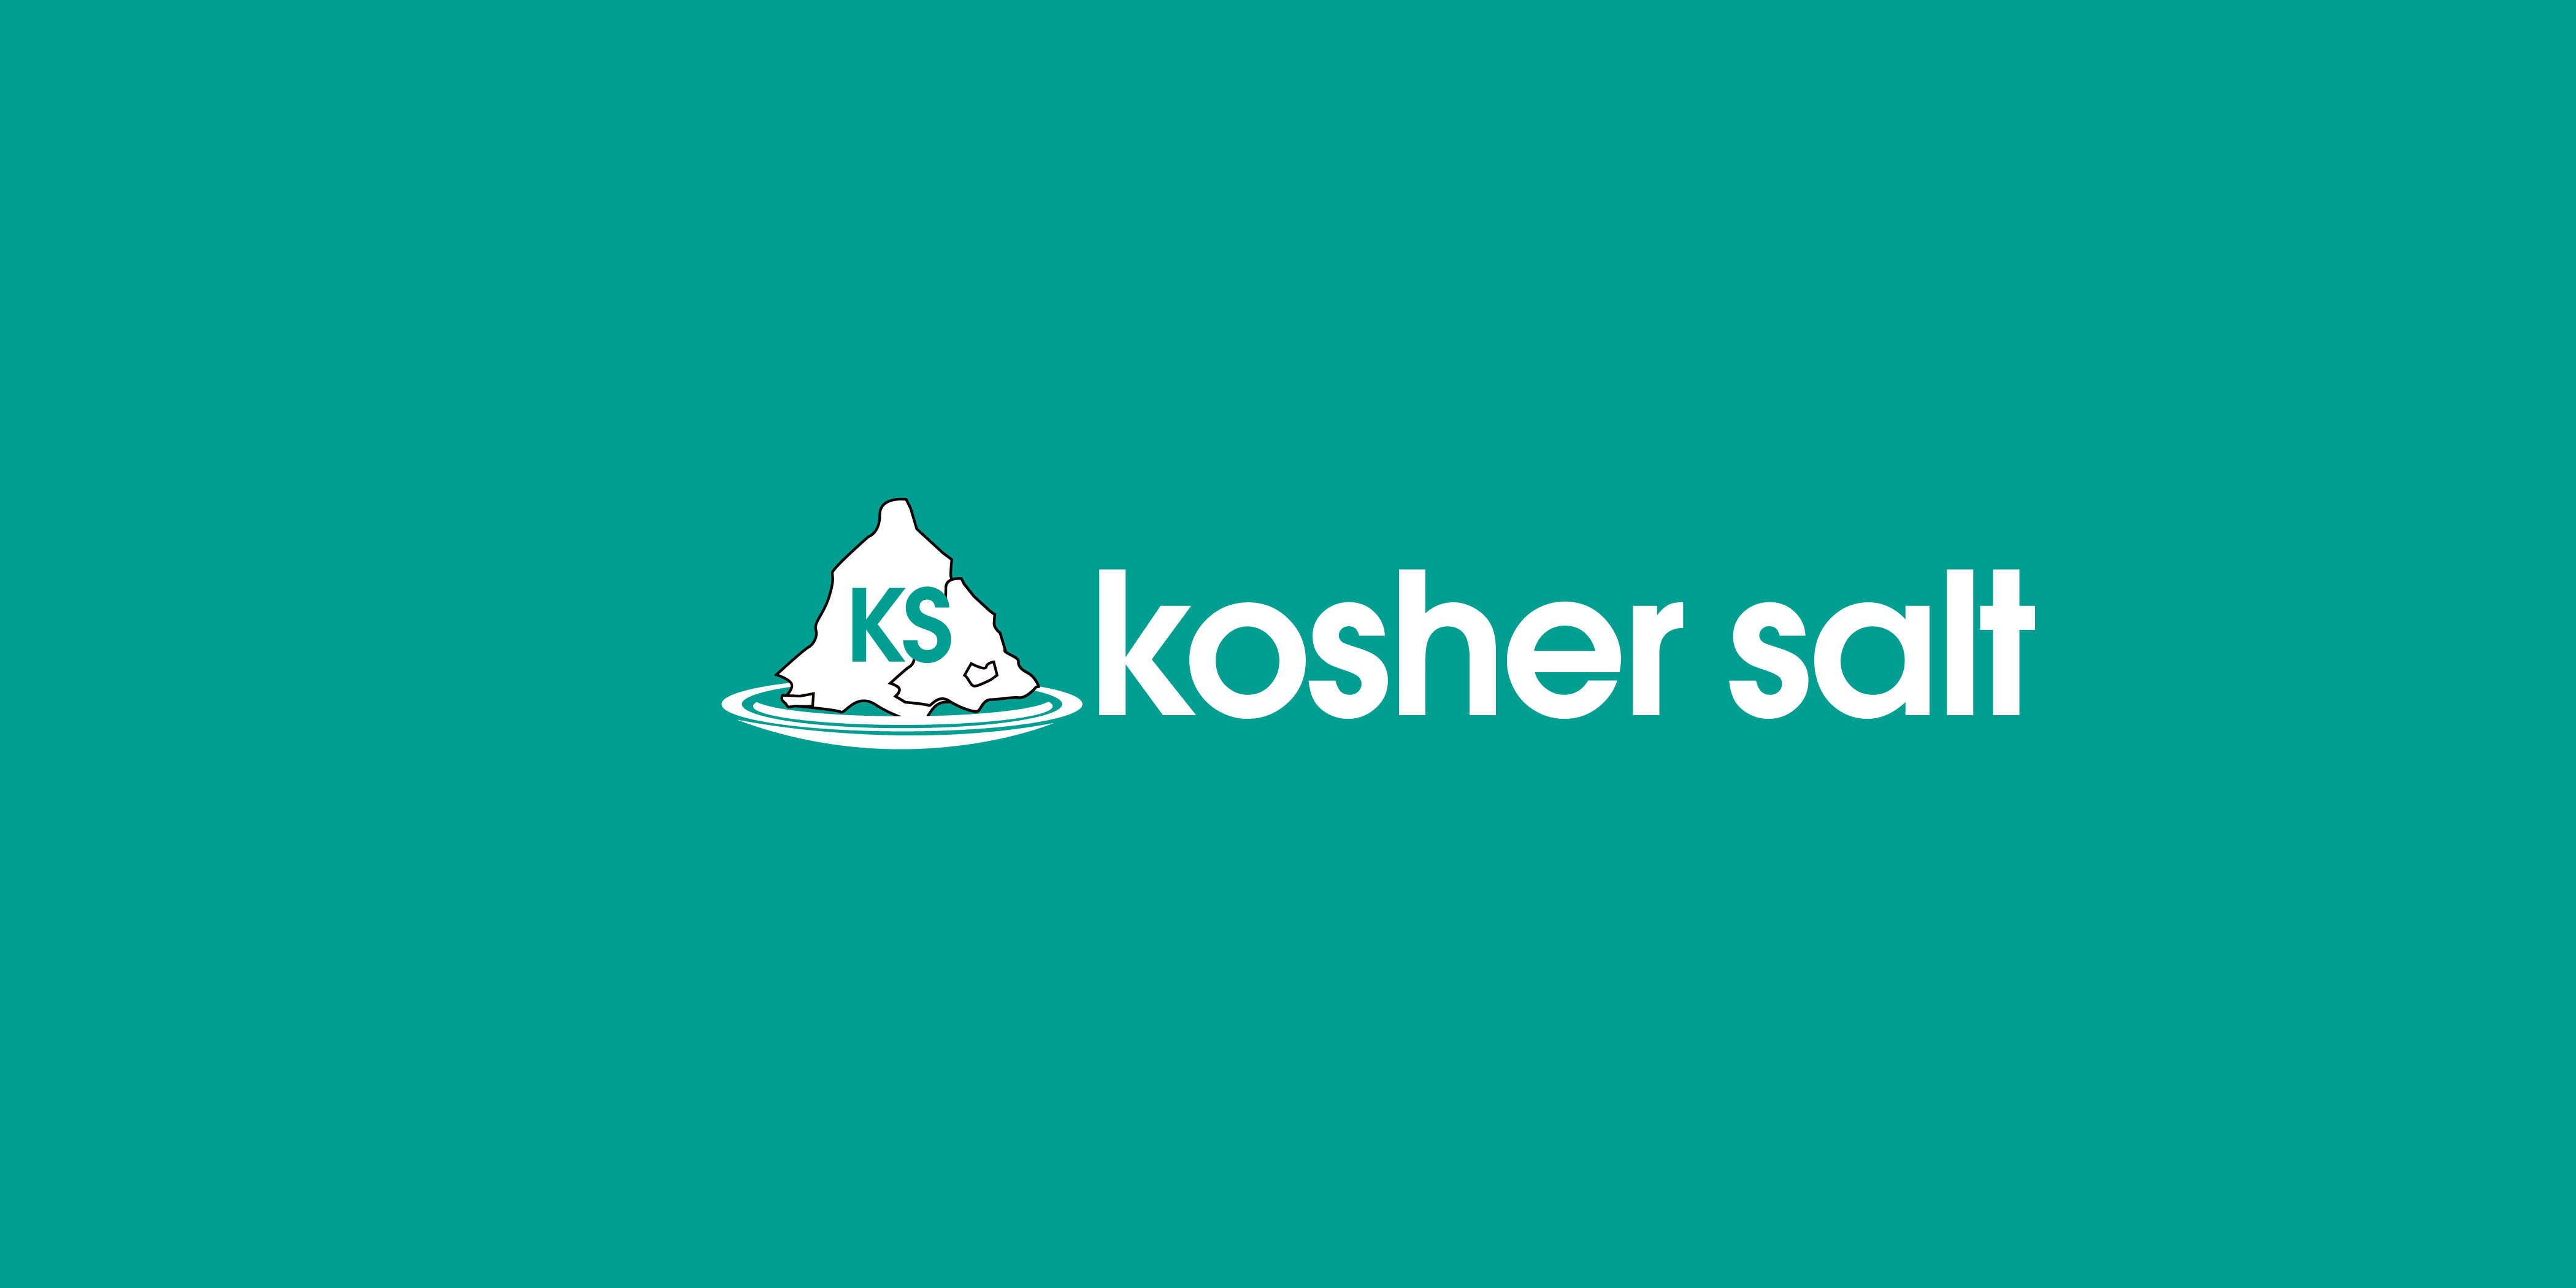 Buy Kosher Salt - All Orders Ship Free!